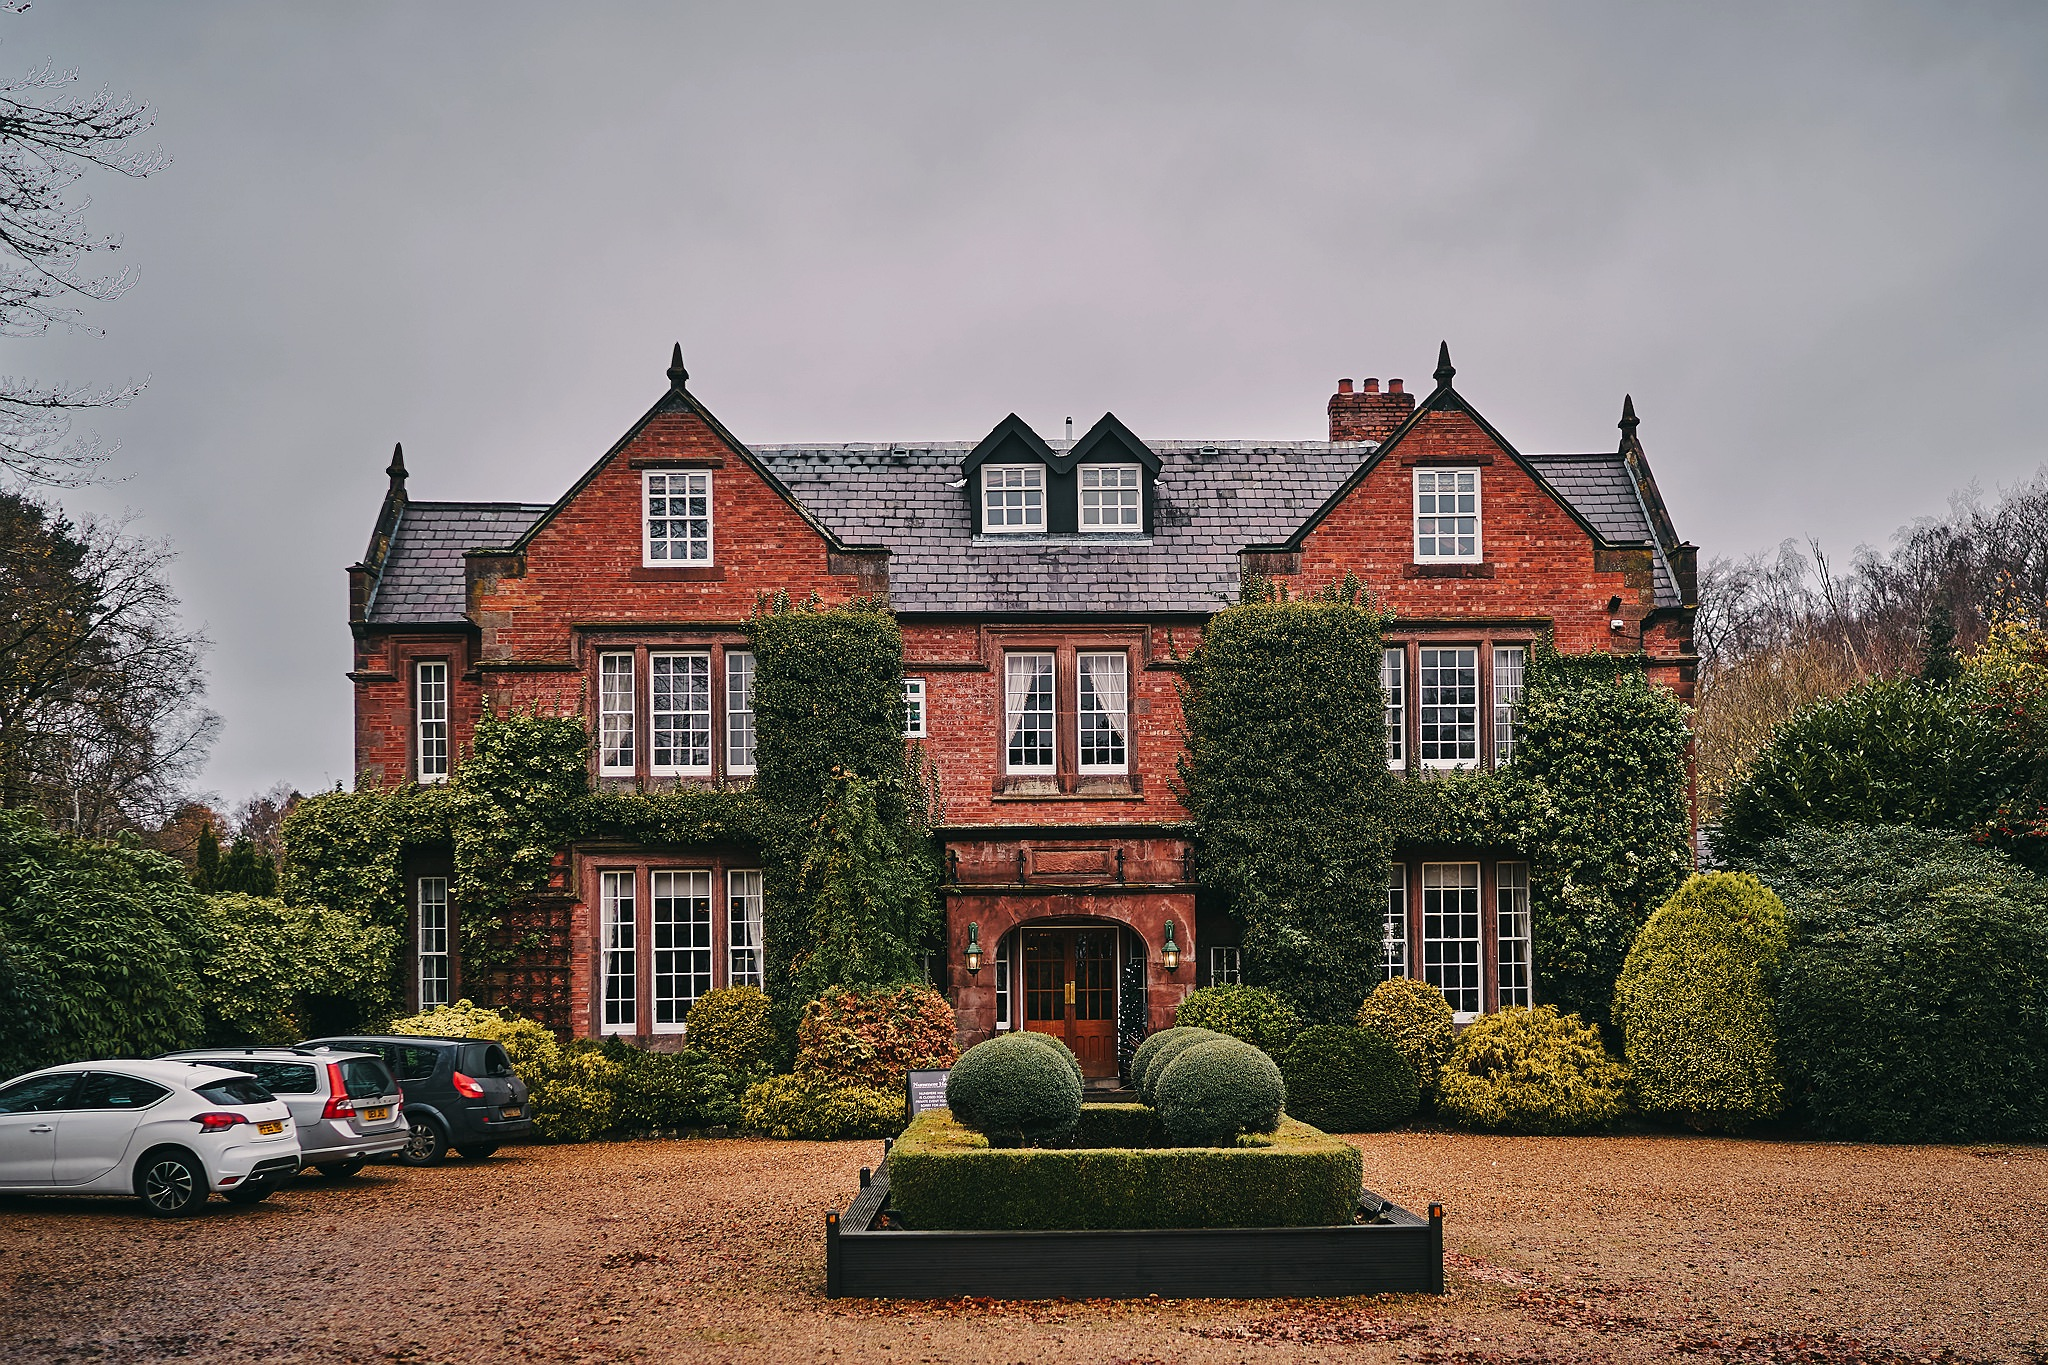 The impressive Nunsmere Hall Hotel